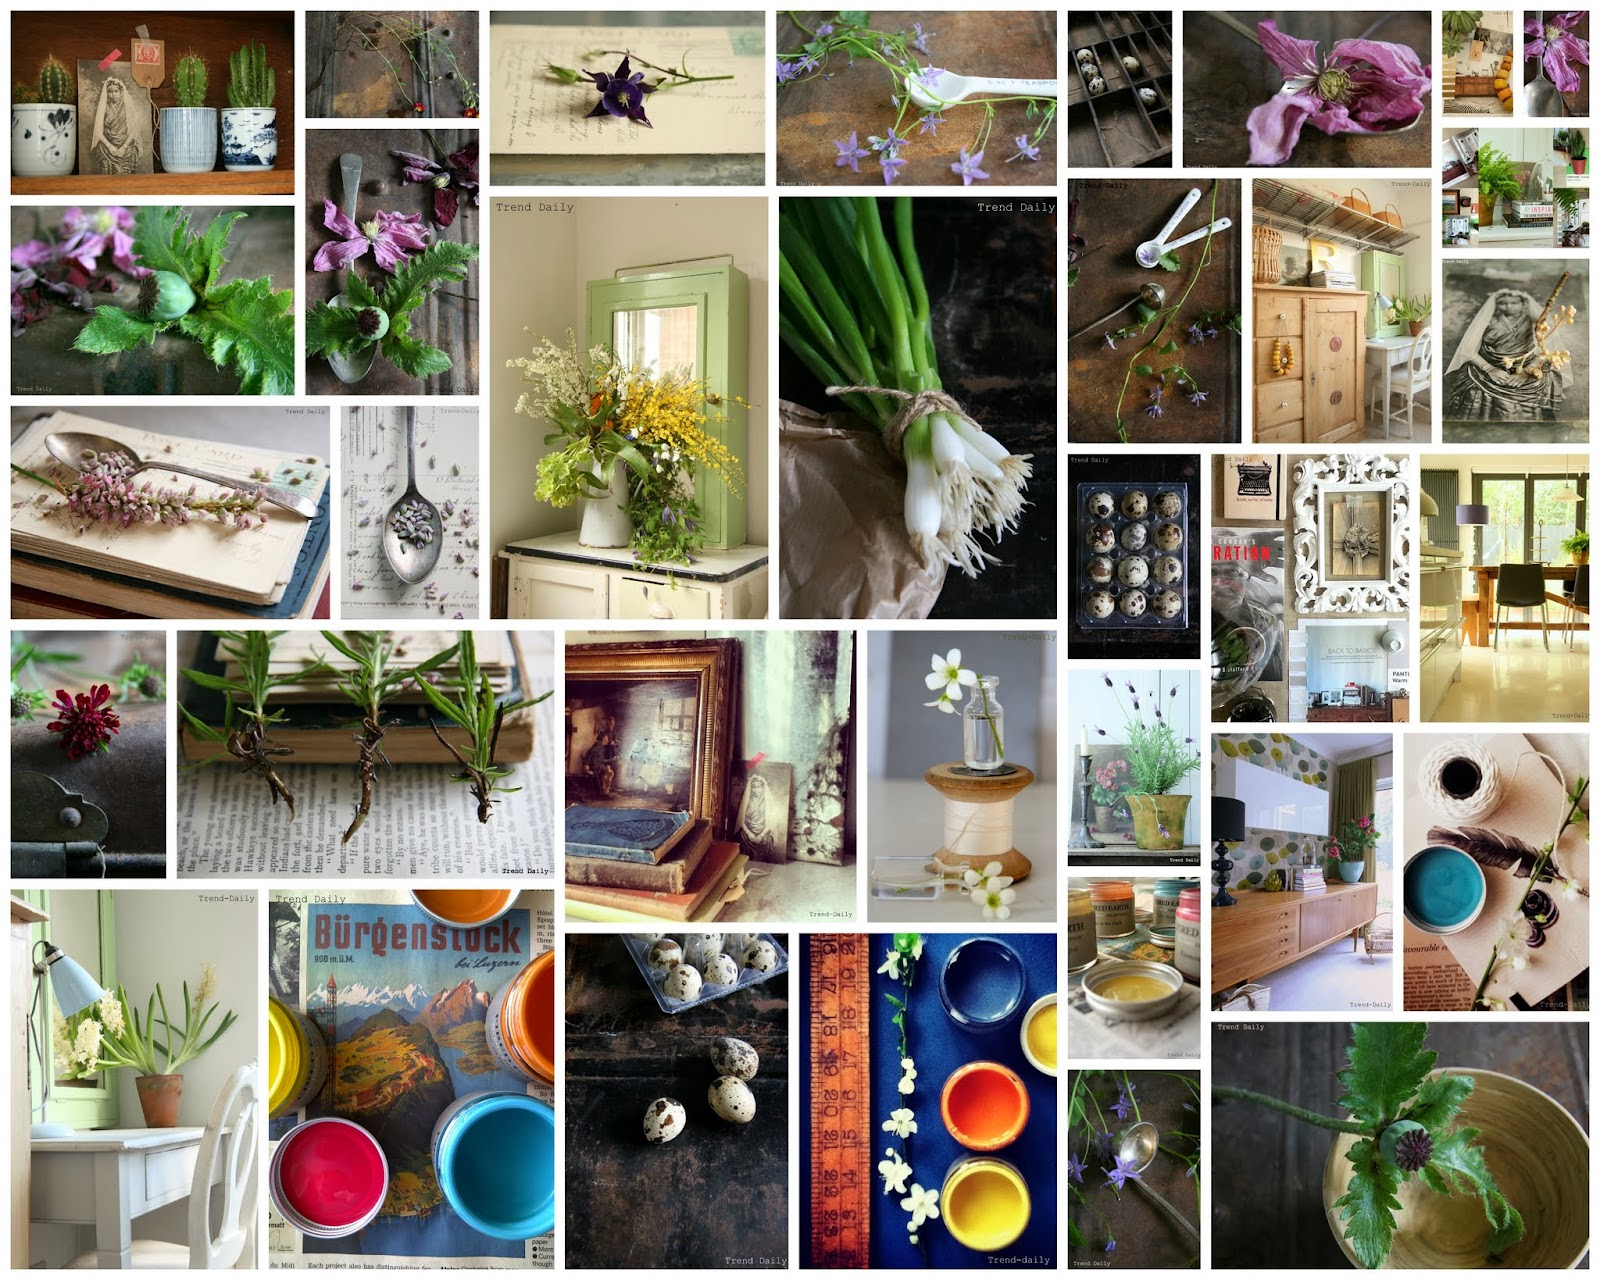 trend-daily blog, caroline davis stylist, moodboard, flowers, colour